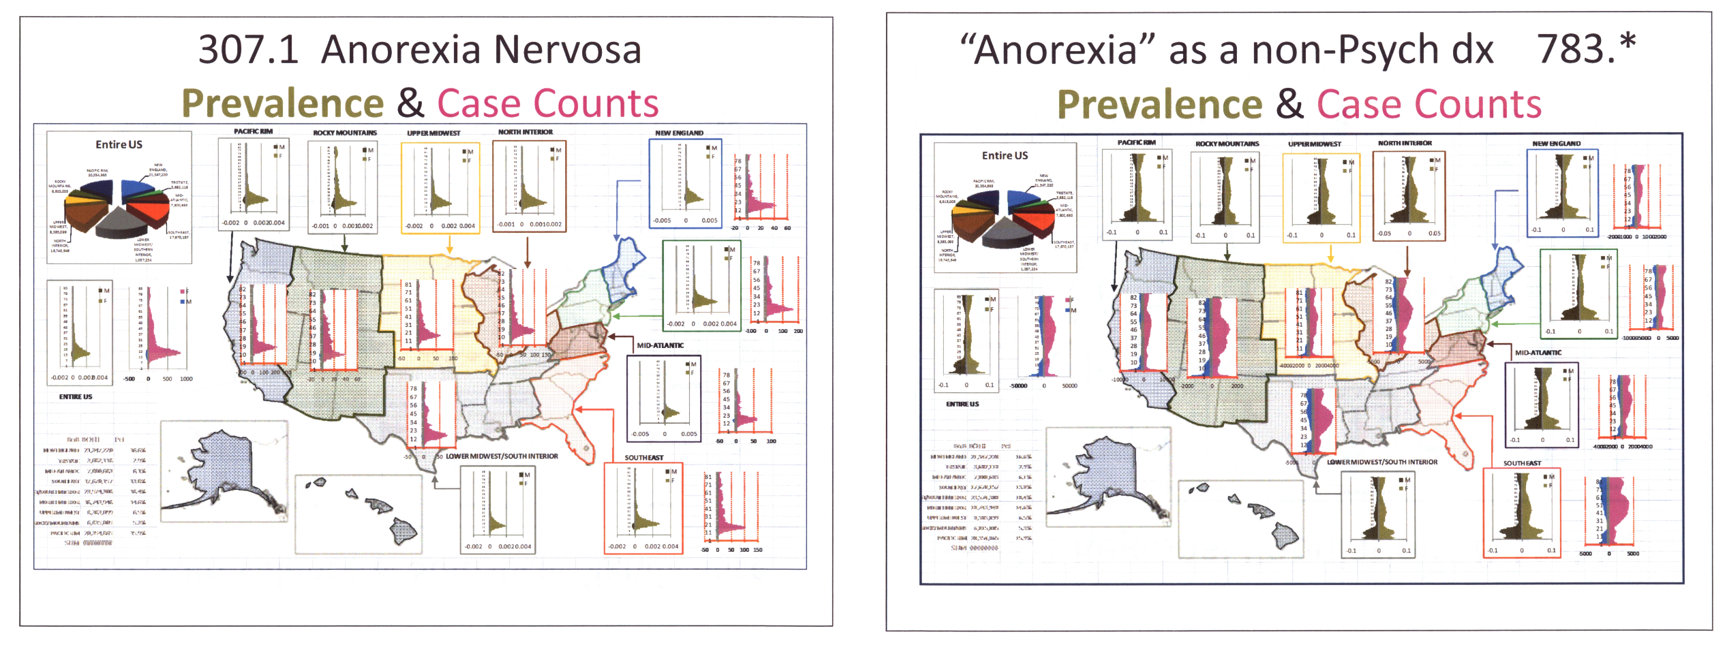 An overview of the causes and prevalence of anorexia nervosa